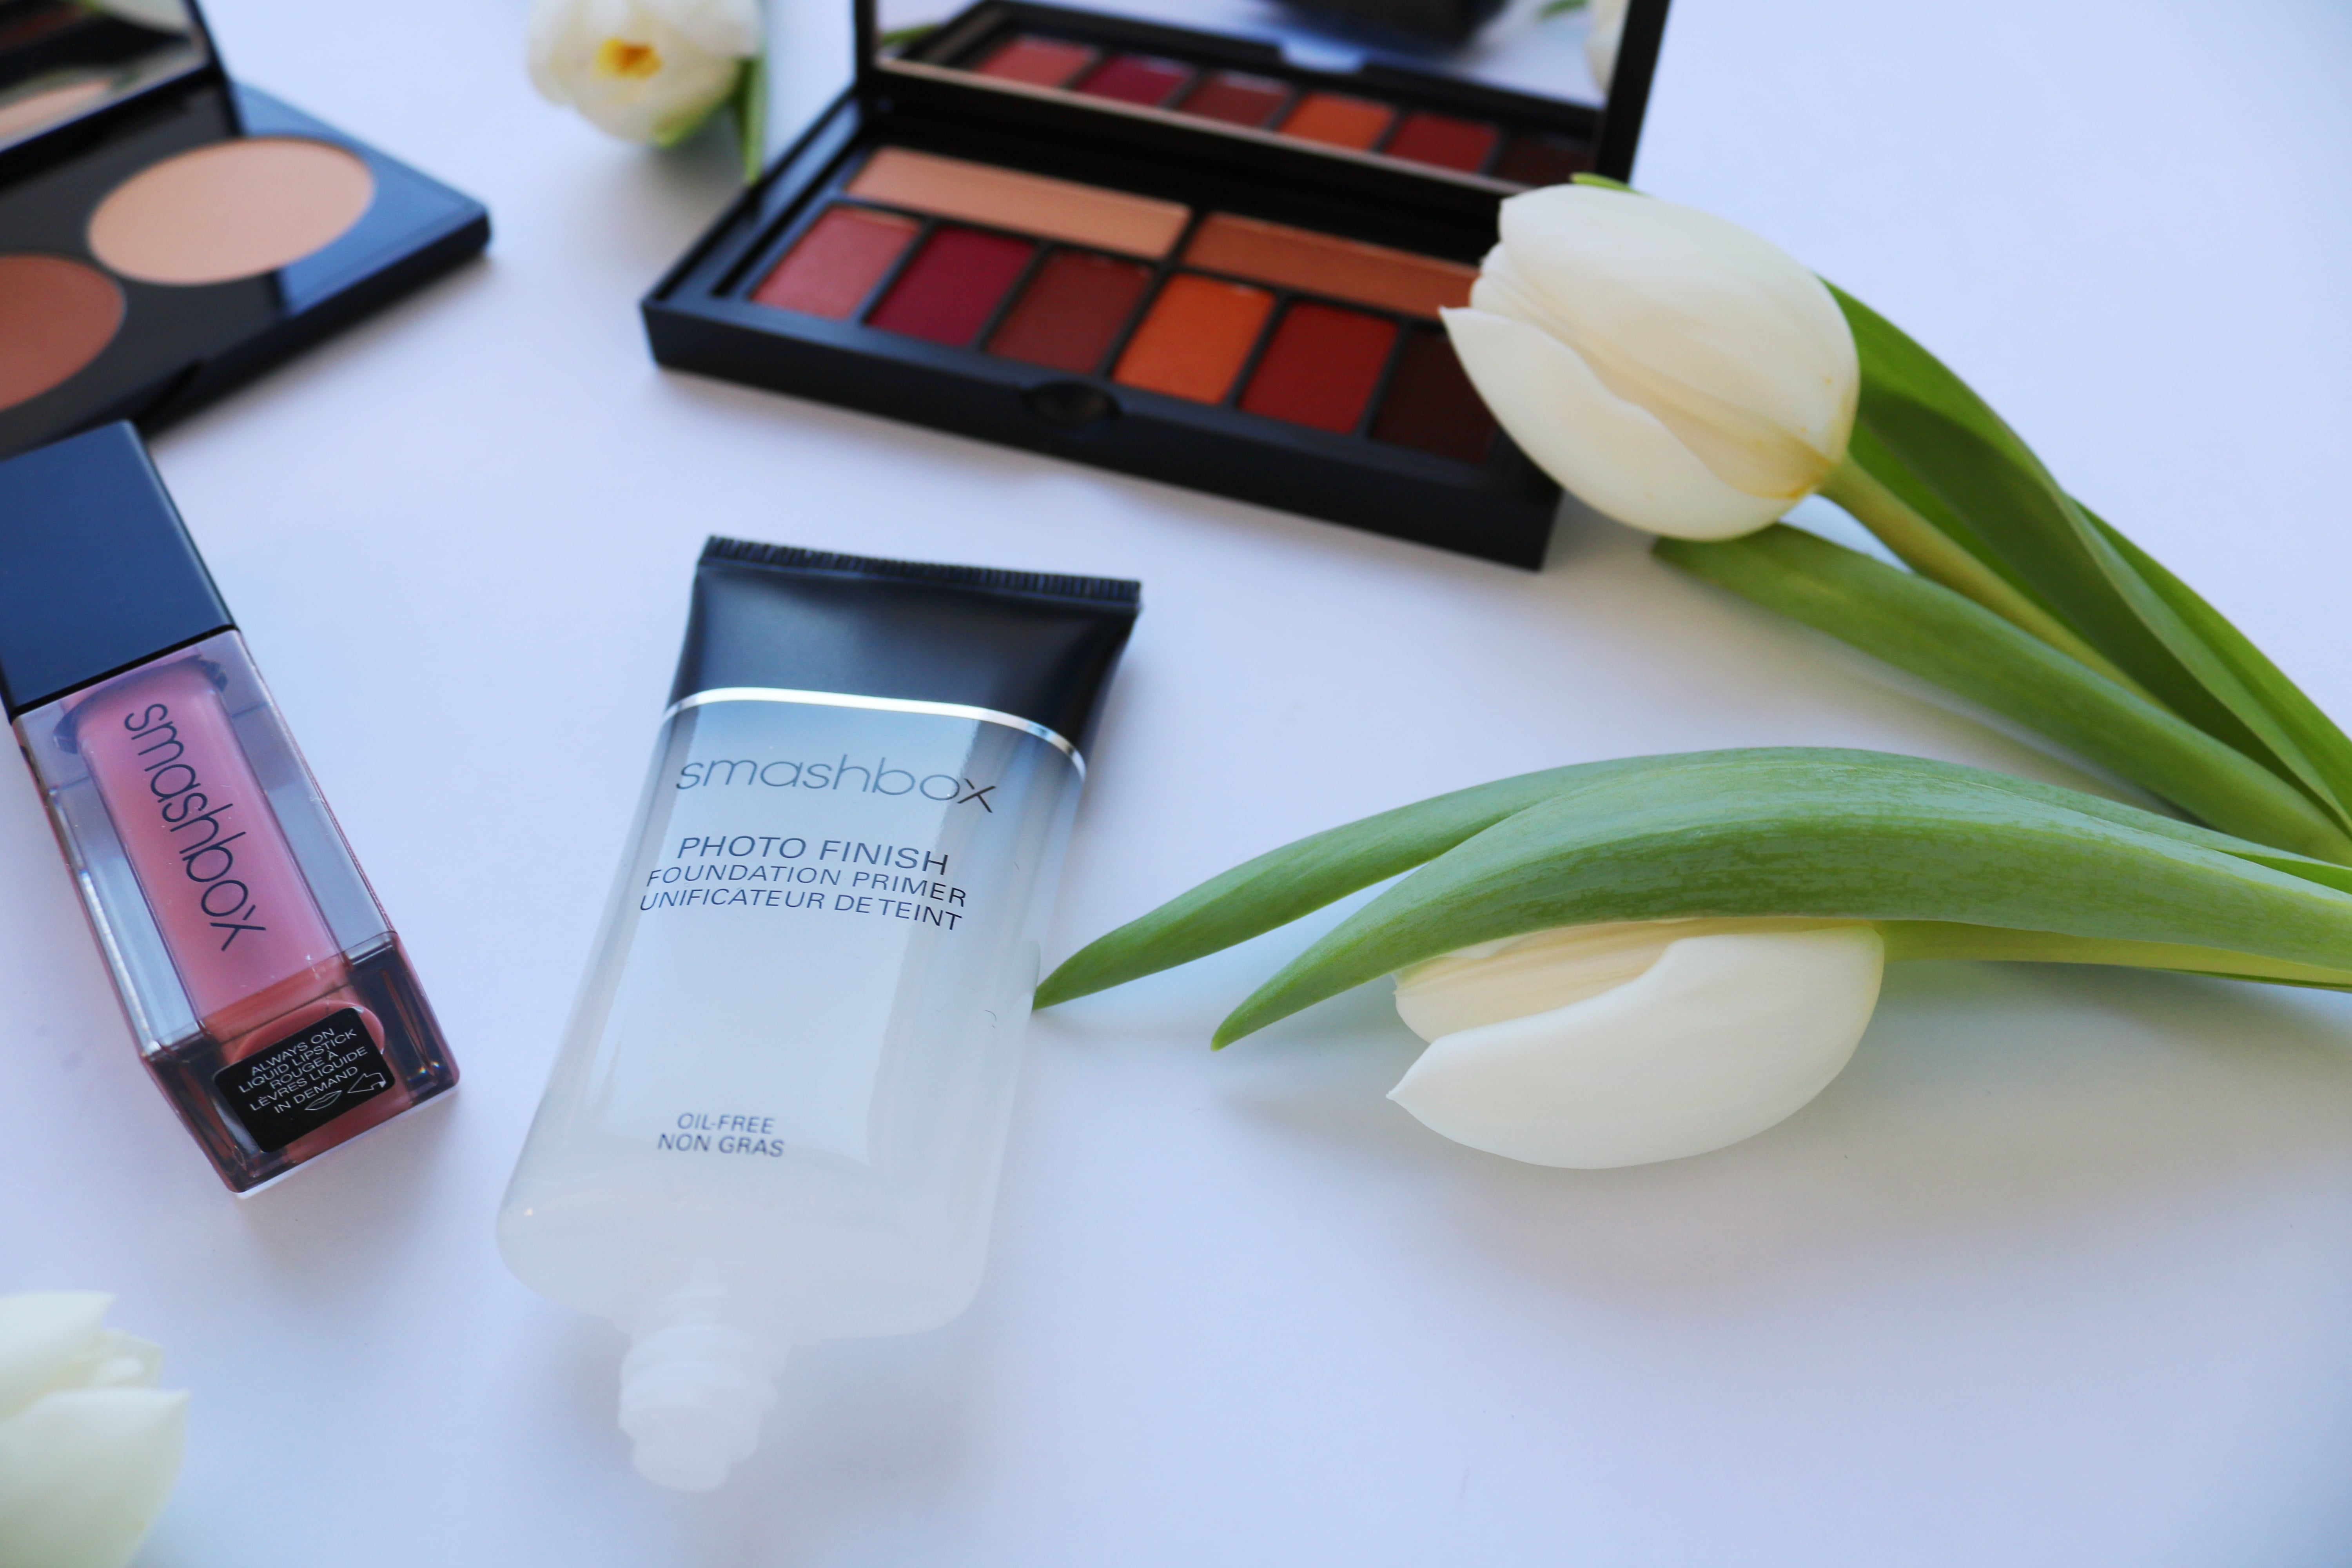 Smashbox Photofinish Foundation Primer